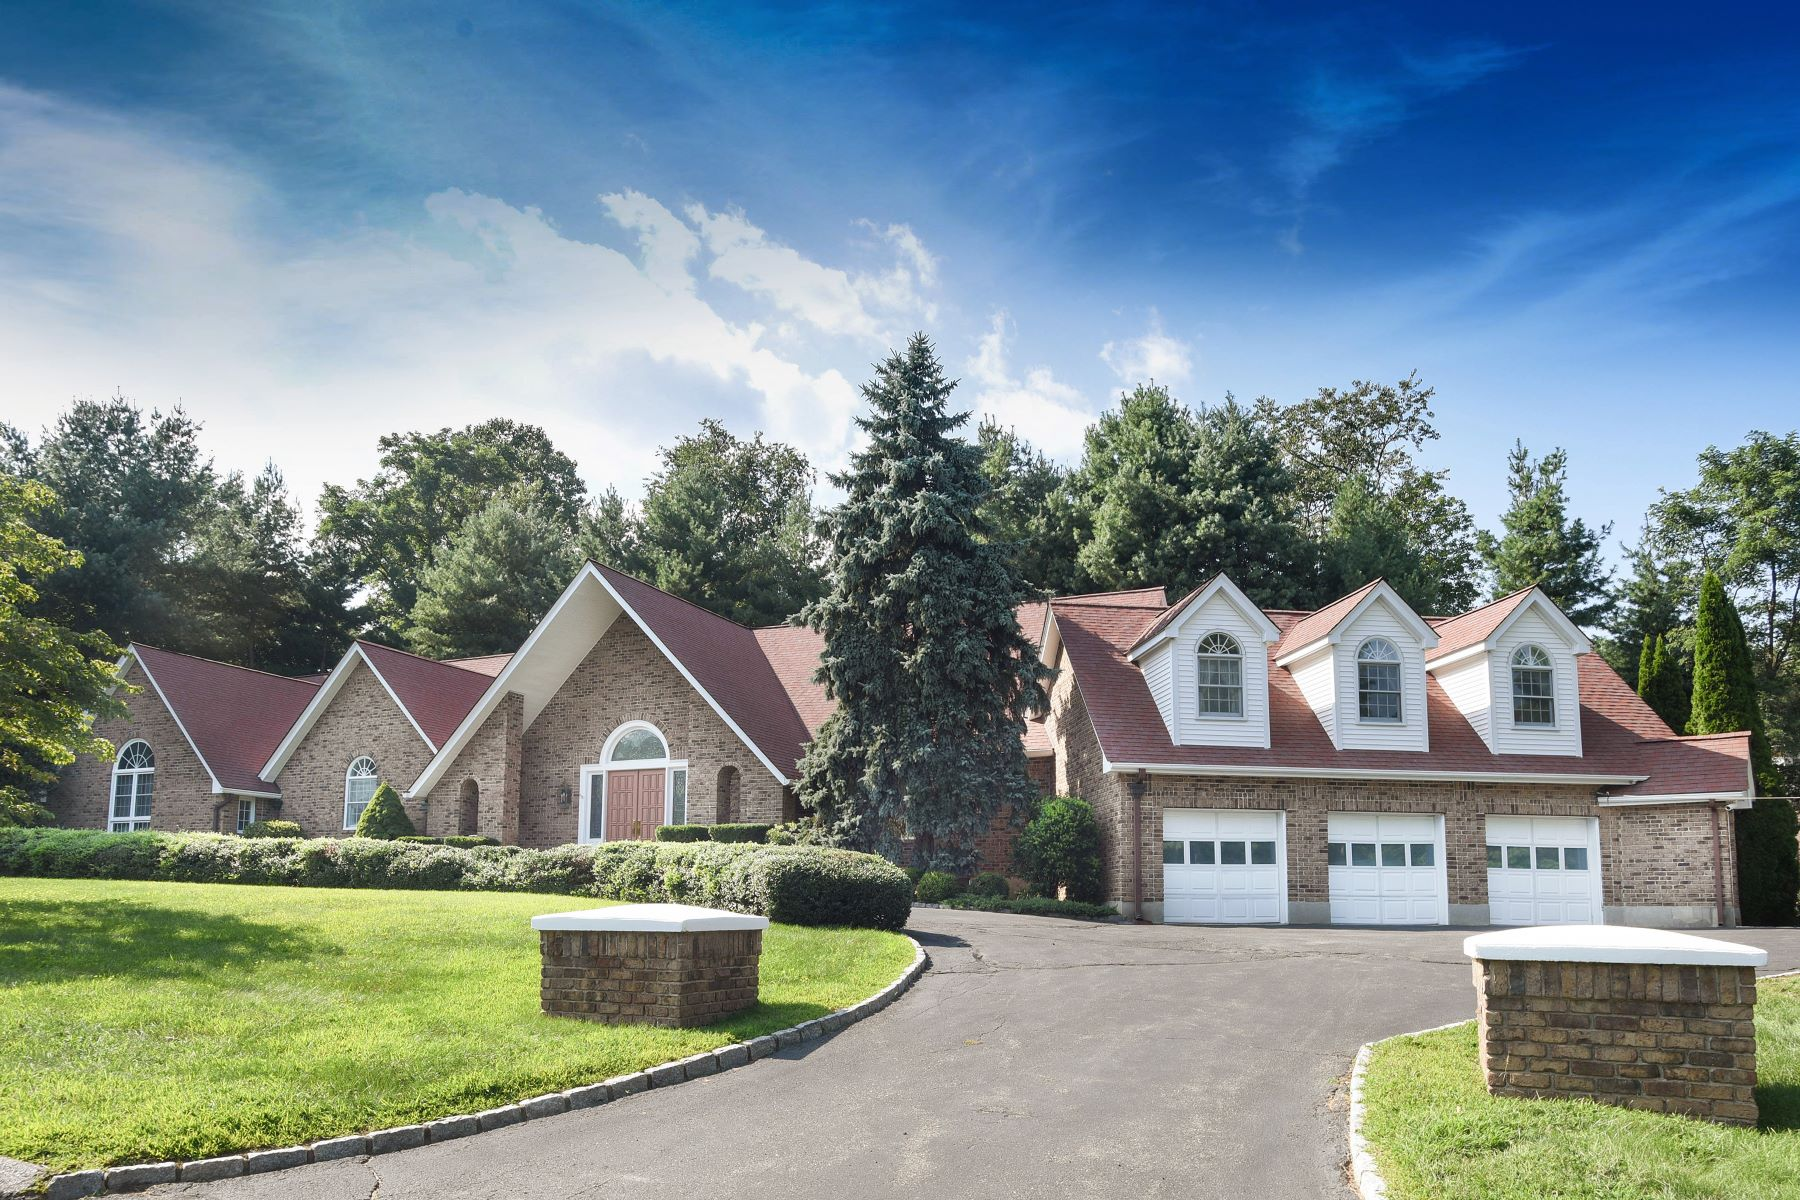 Single Family Home for Sale at 35 Amante Drive 35 Amante Drive Easton, Connecticut 06612 United States